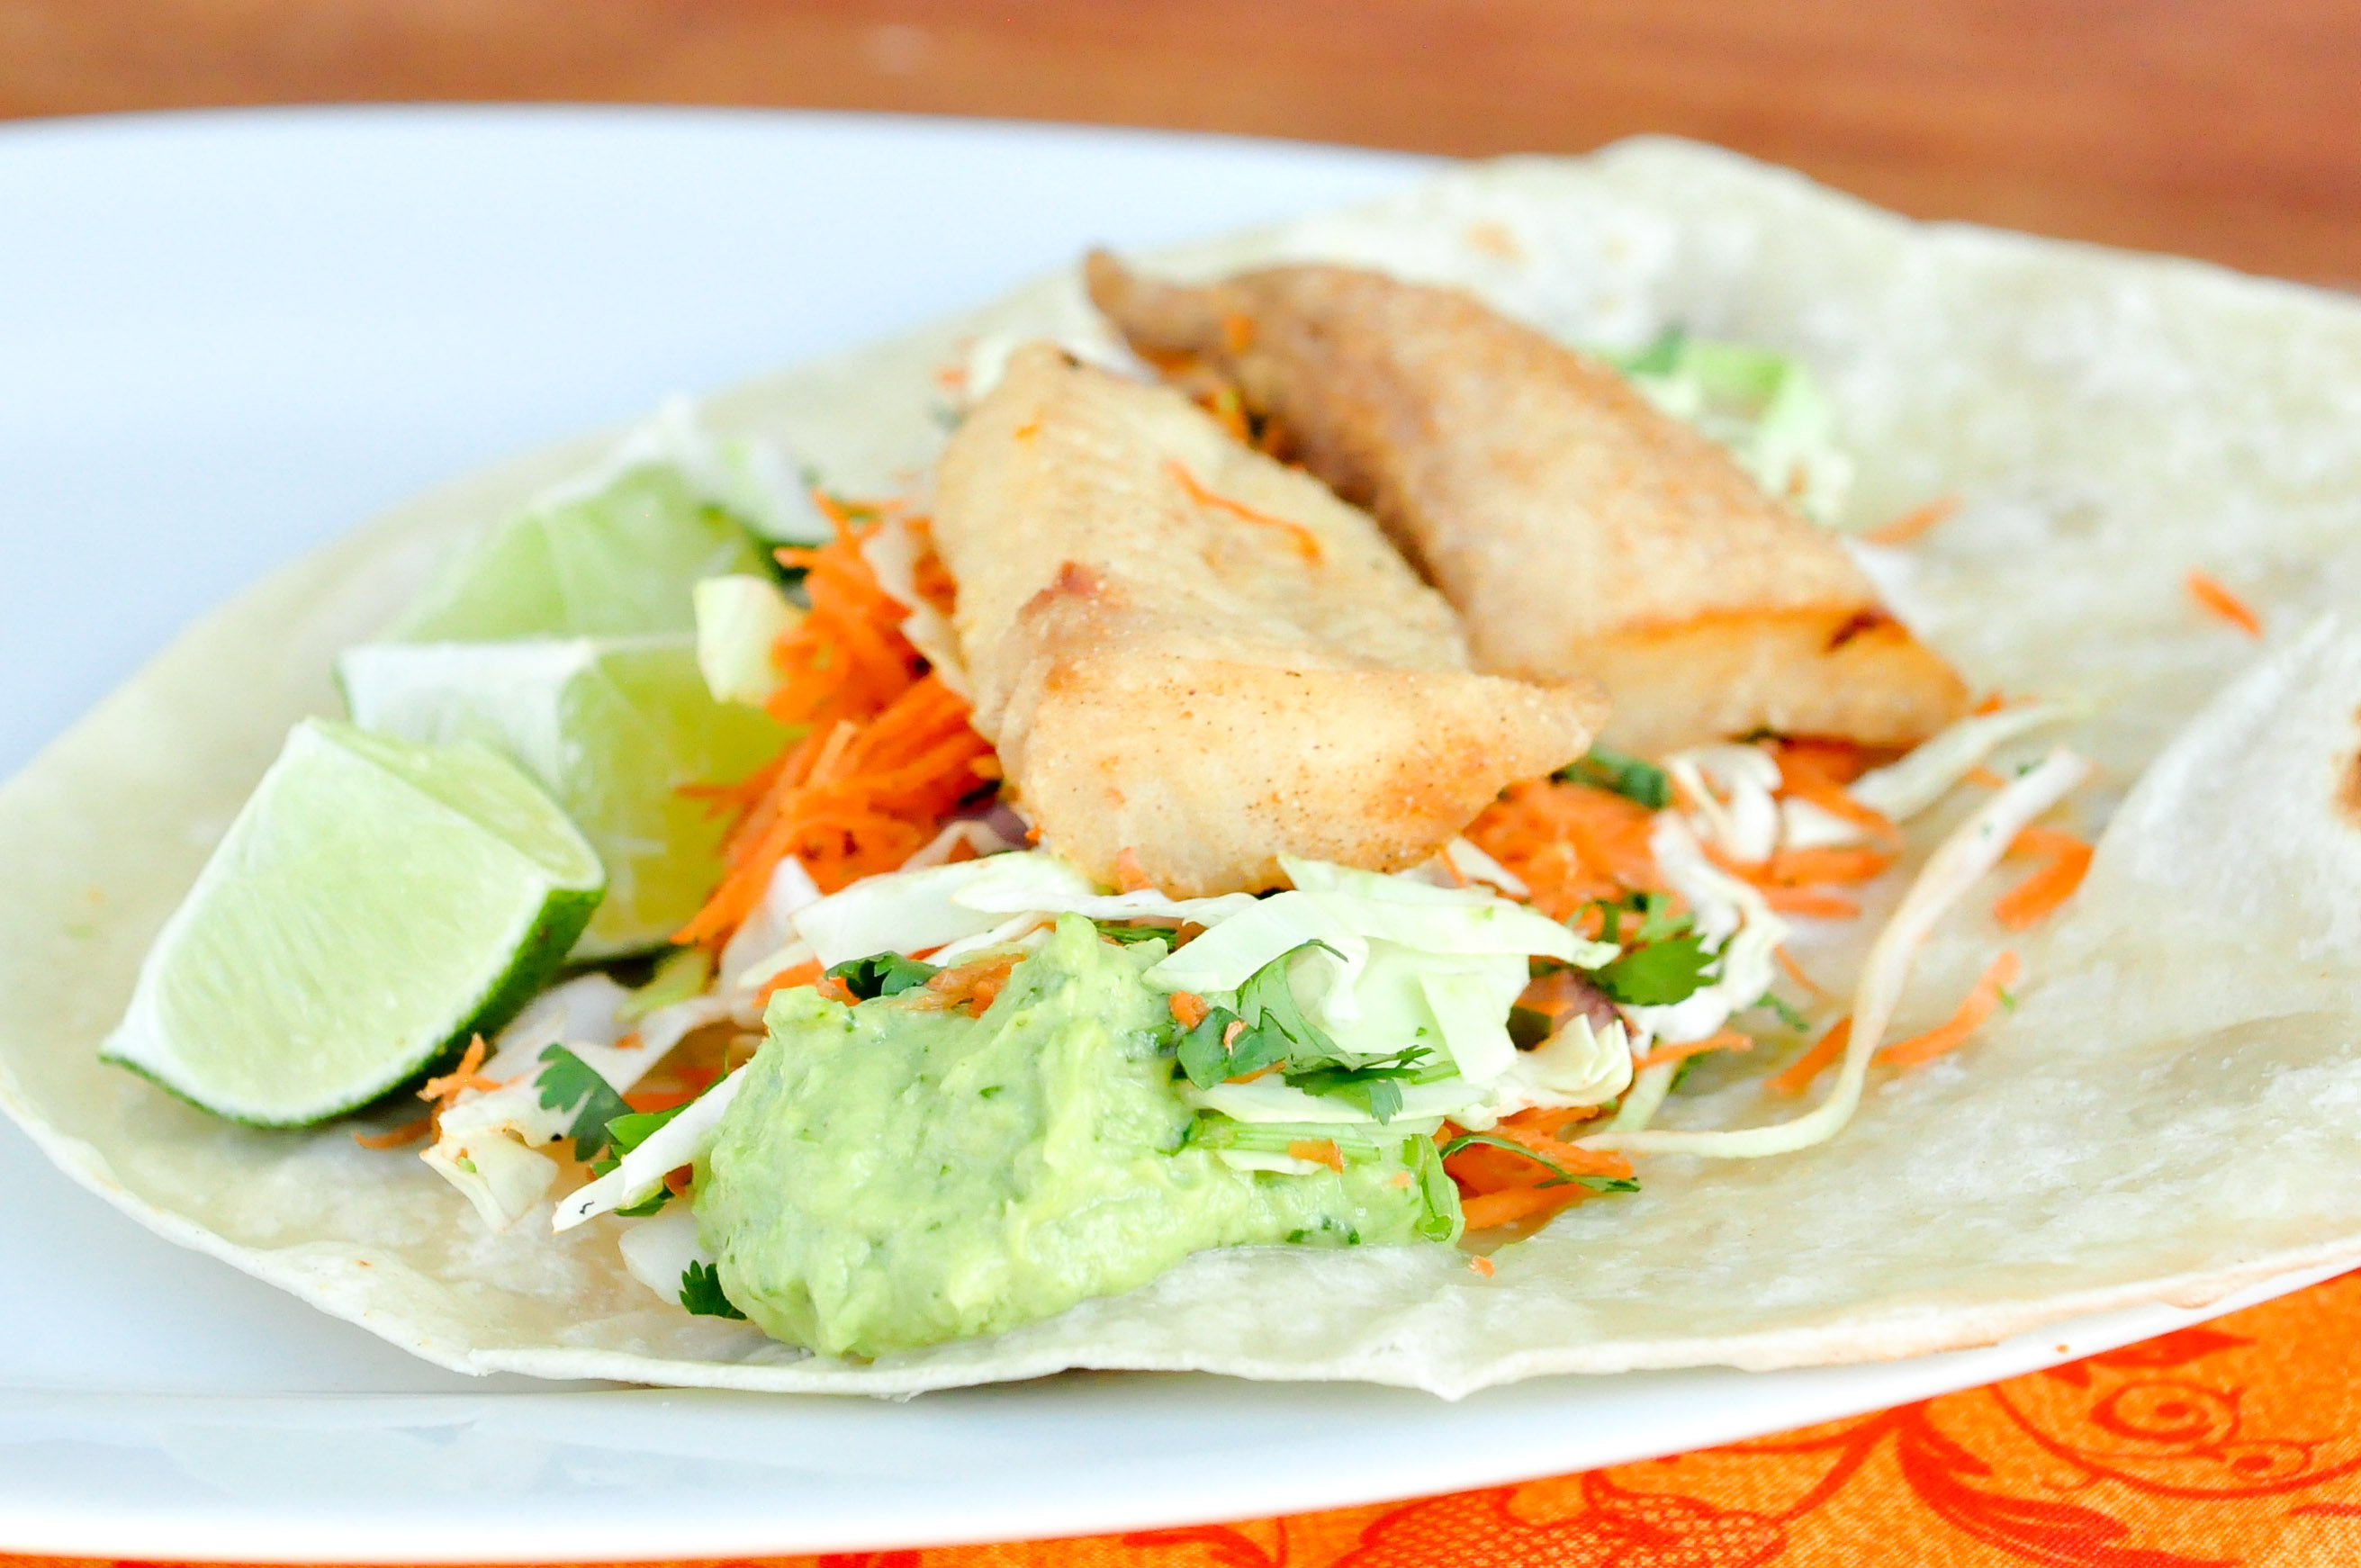 Beer battered pub style fish and chips foods of our lives for Baja fish tacos